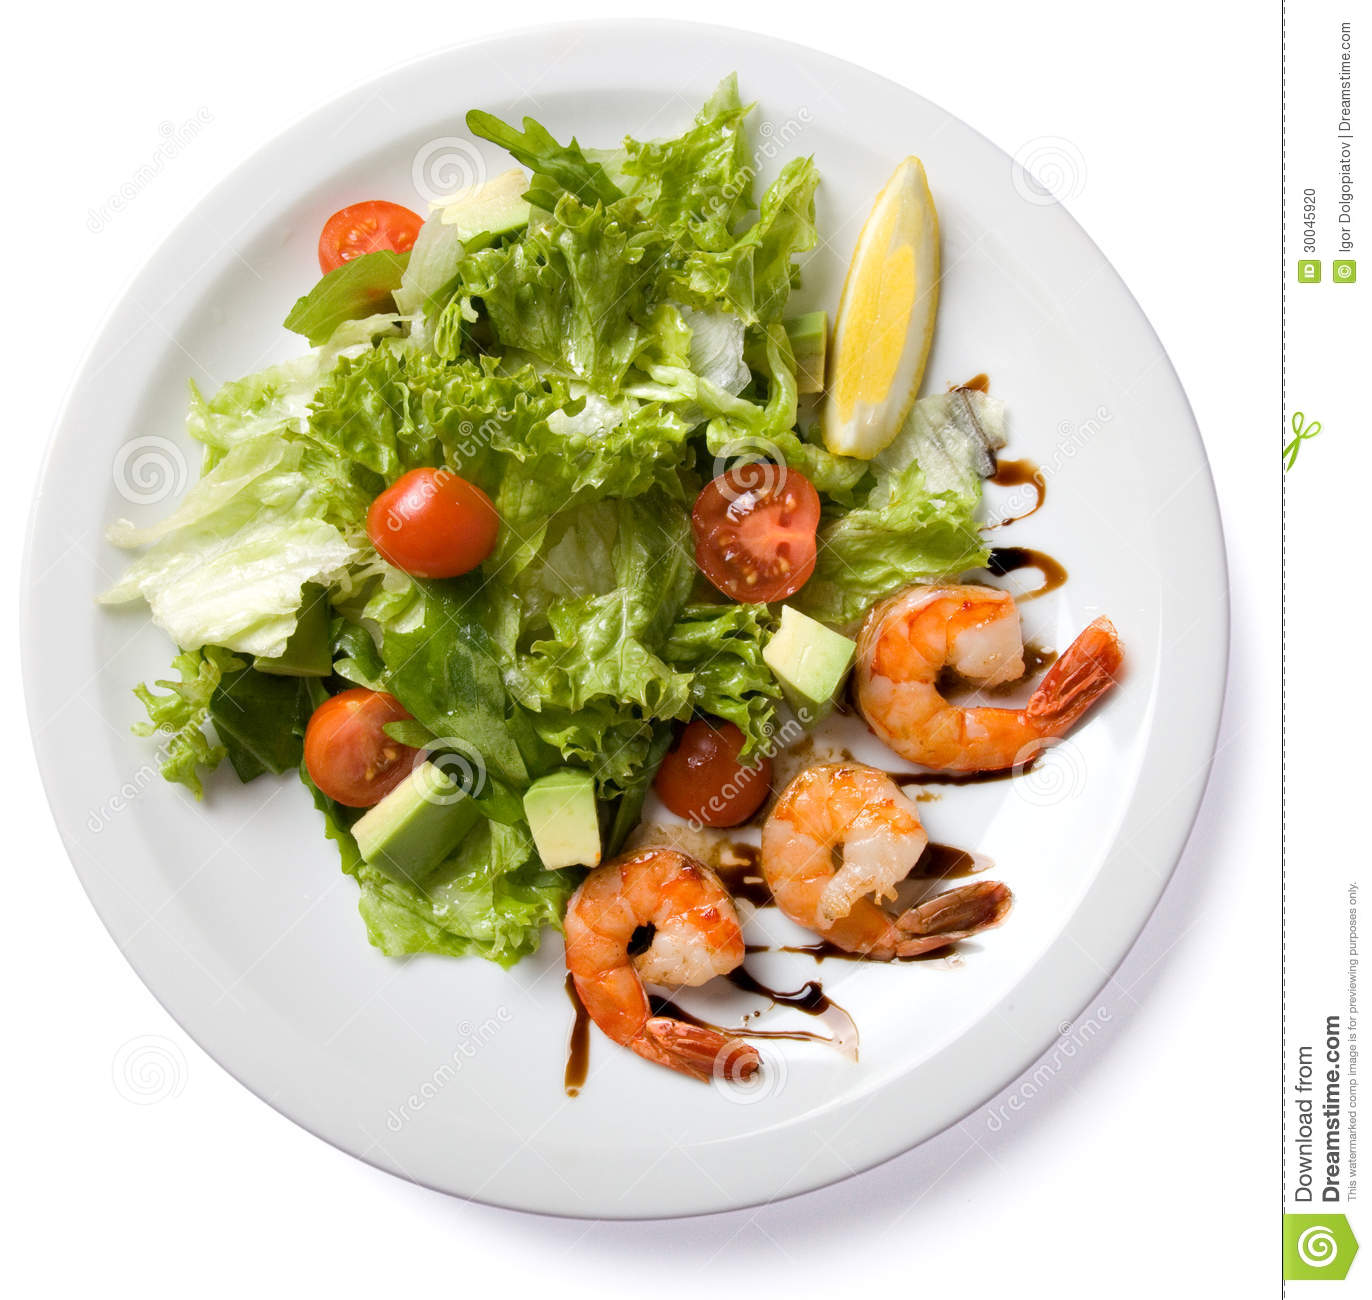 Plate With Food Top View Salad With Shrimp Served On White Plate Stock Photo